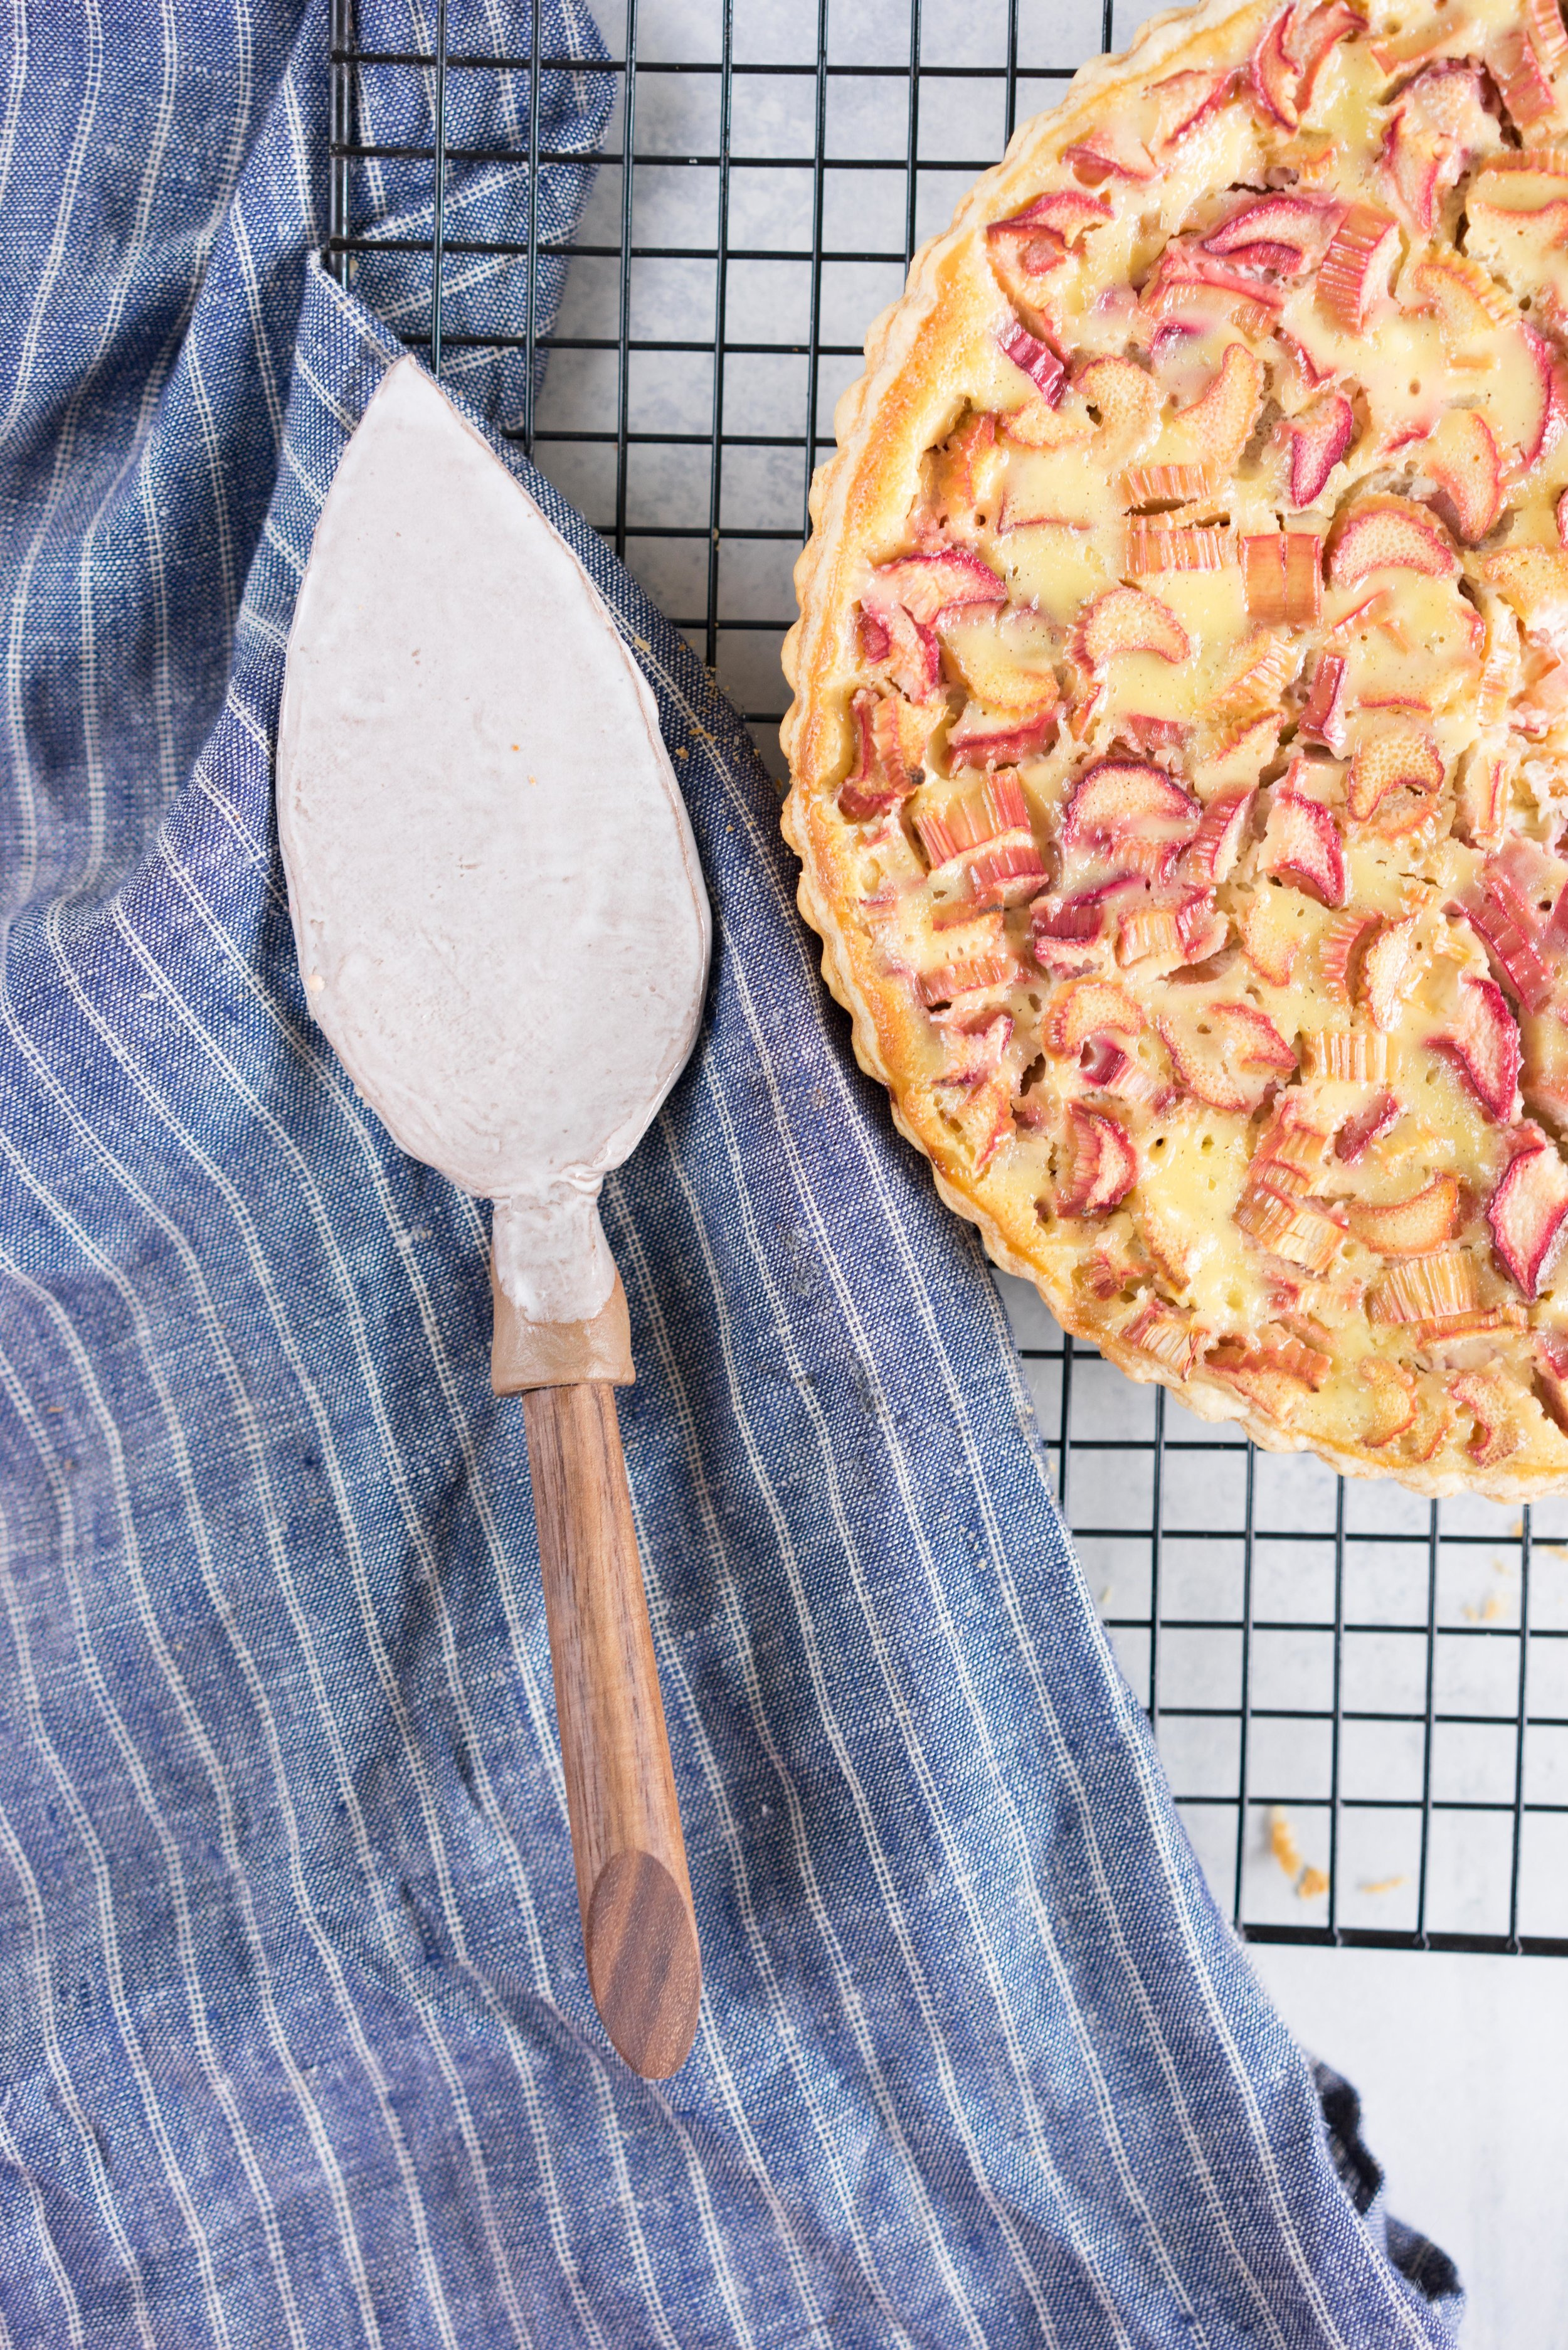 Rhubarb flan - flaky pastry and thinly sliced rhubarb encased in a creamy vanilla custard